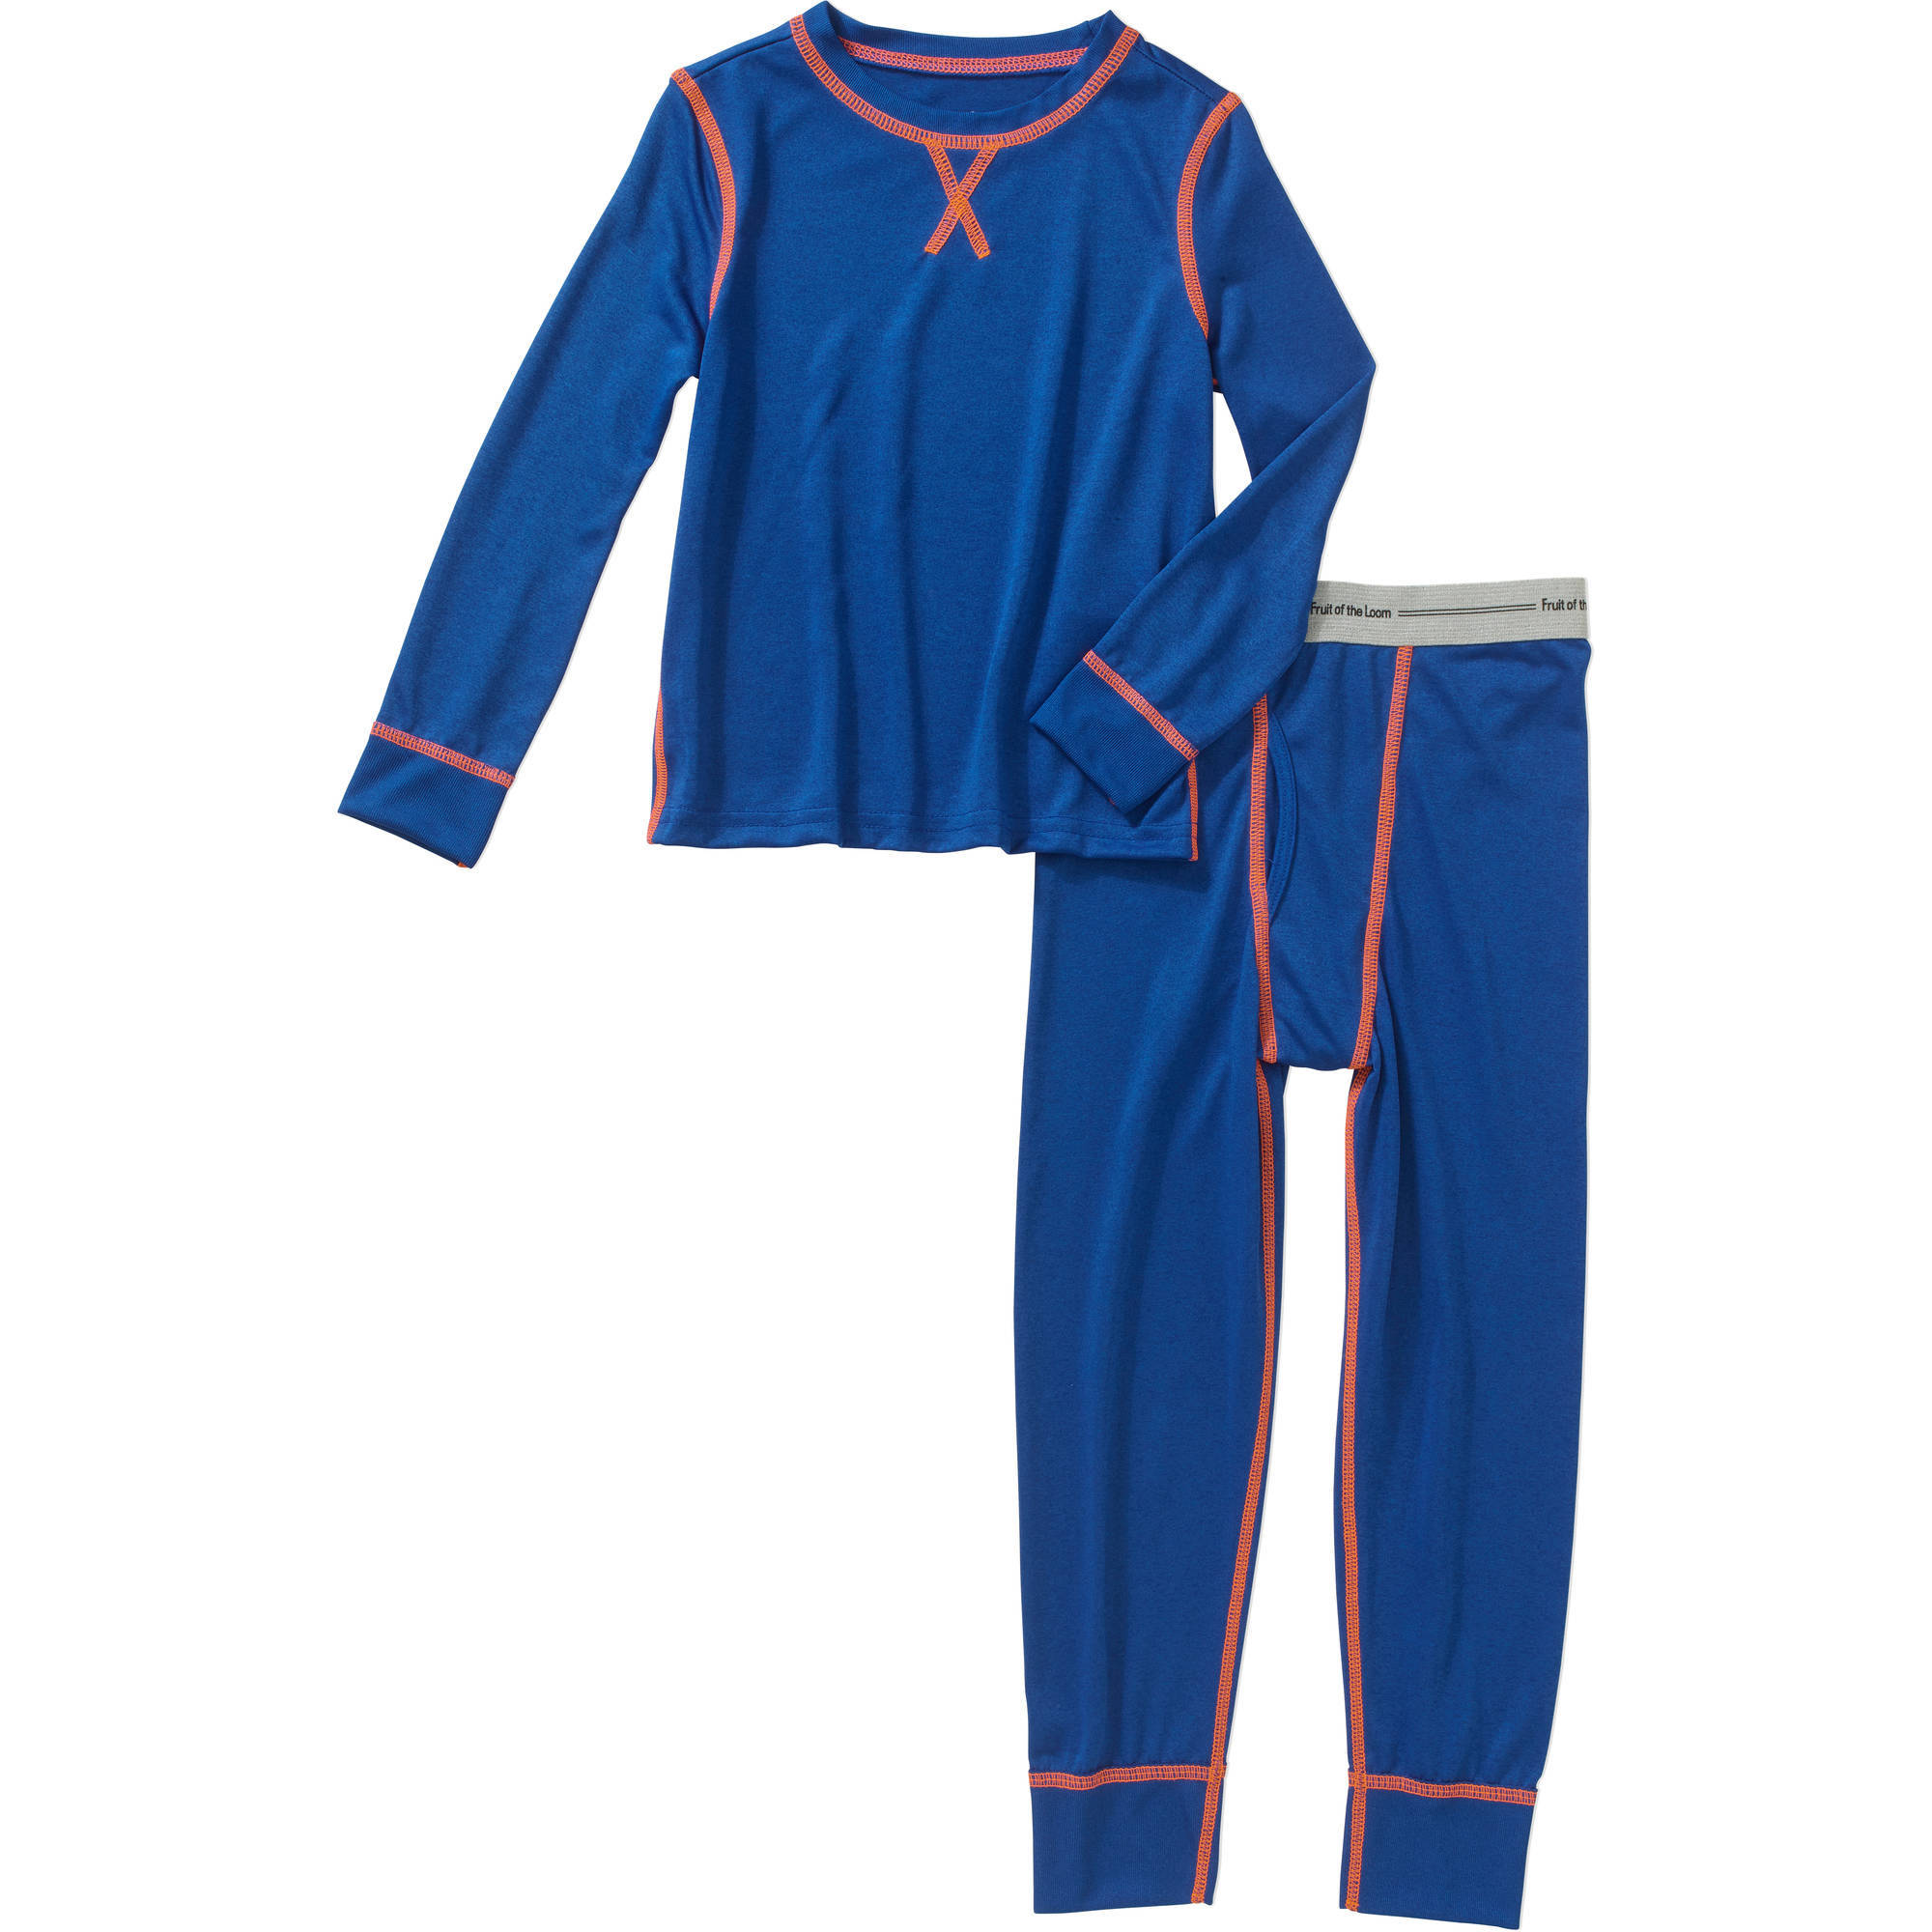 Fruit of the Loom Boys' Core Performance Thermal Underwear Set